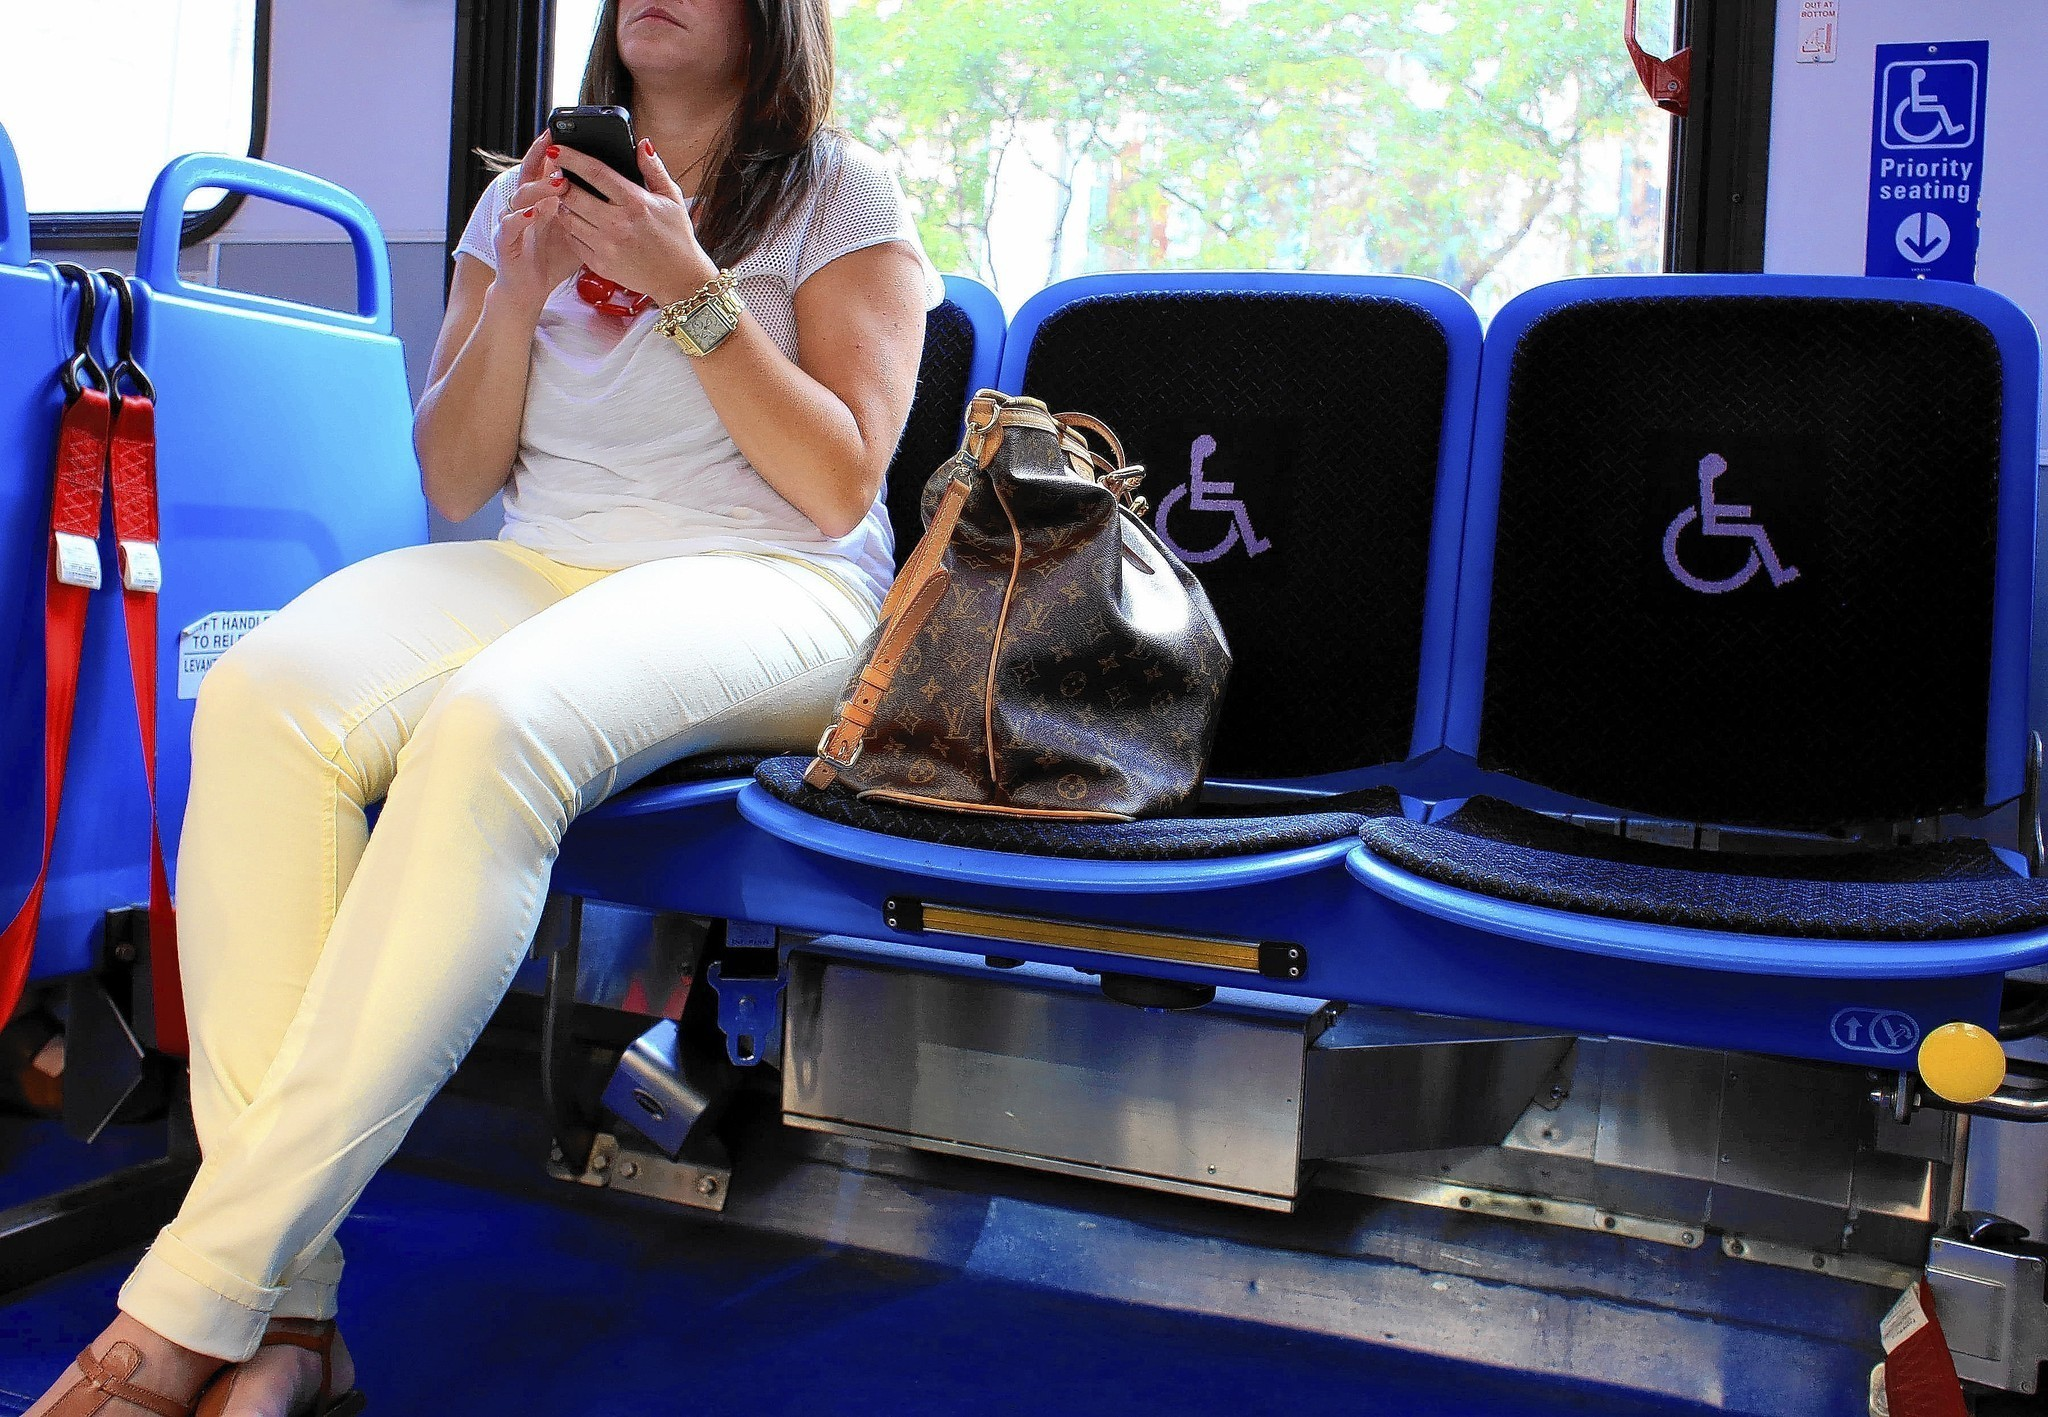 cta priority seating and the ada